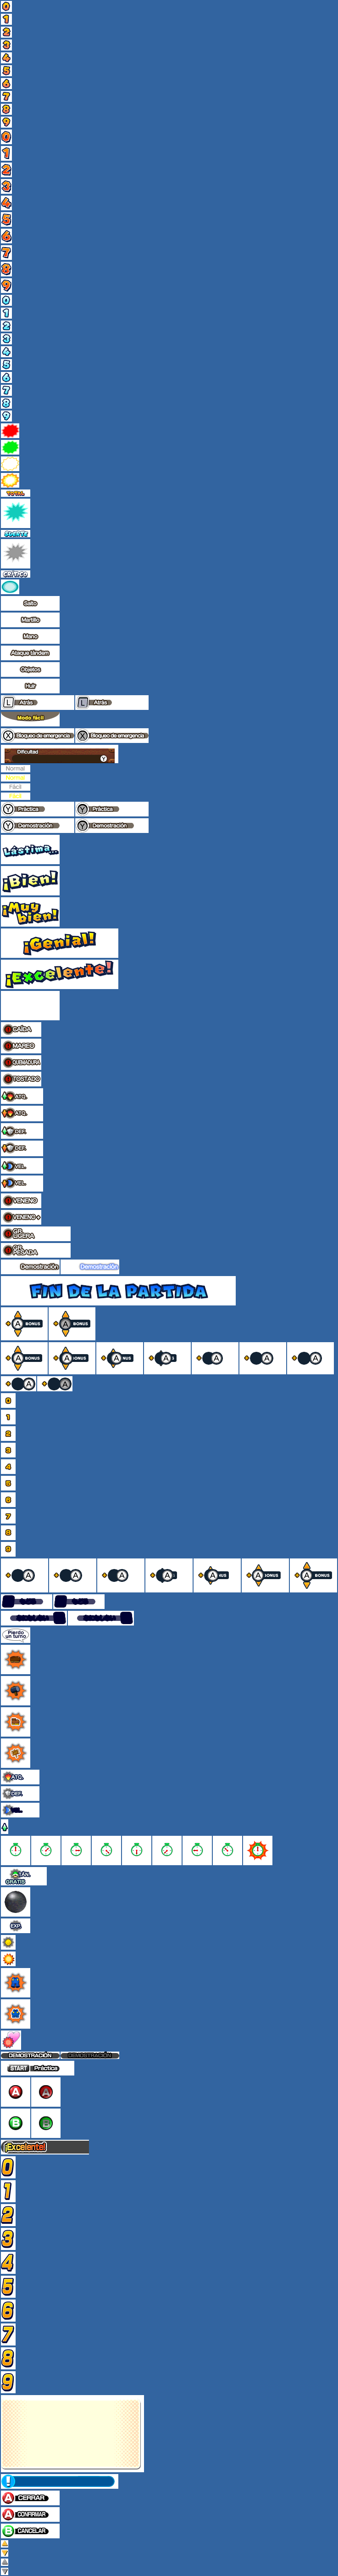 Battle UI (Spanish)